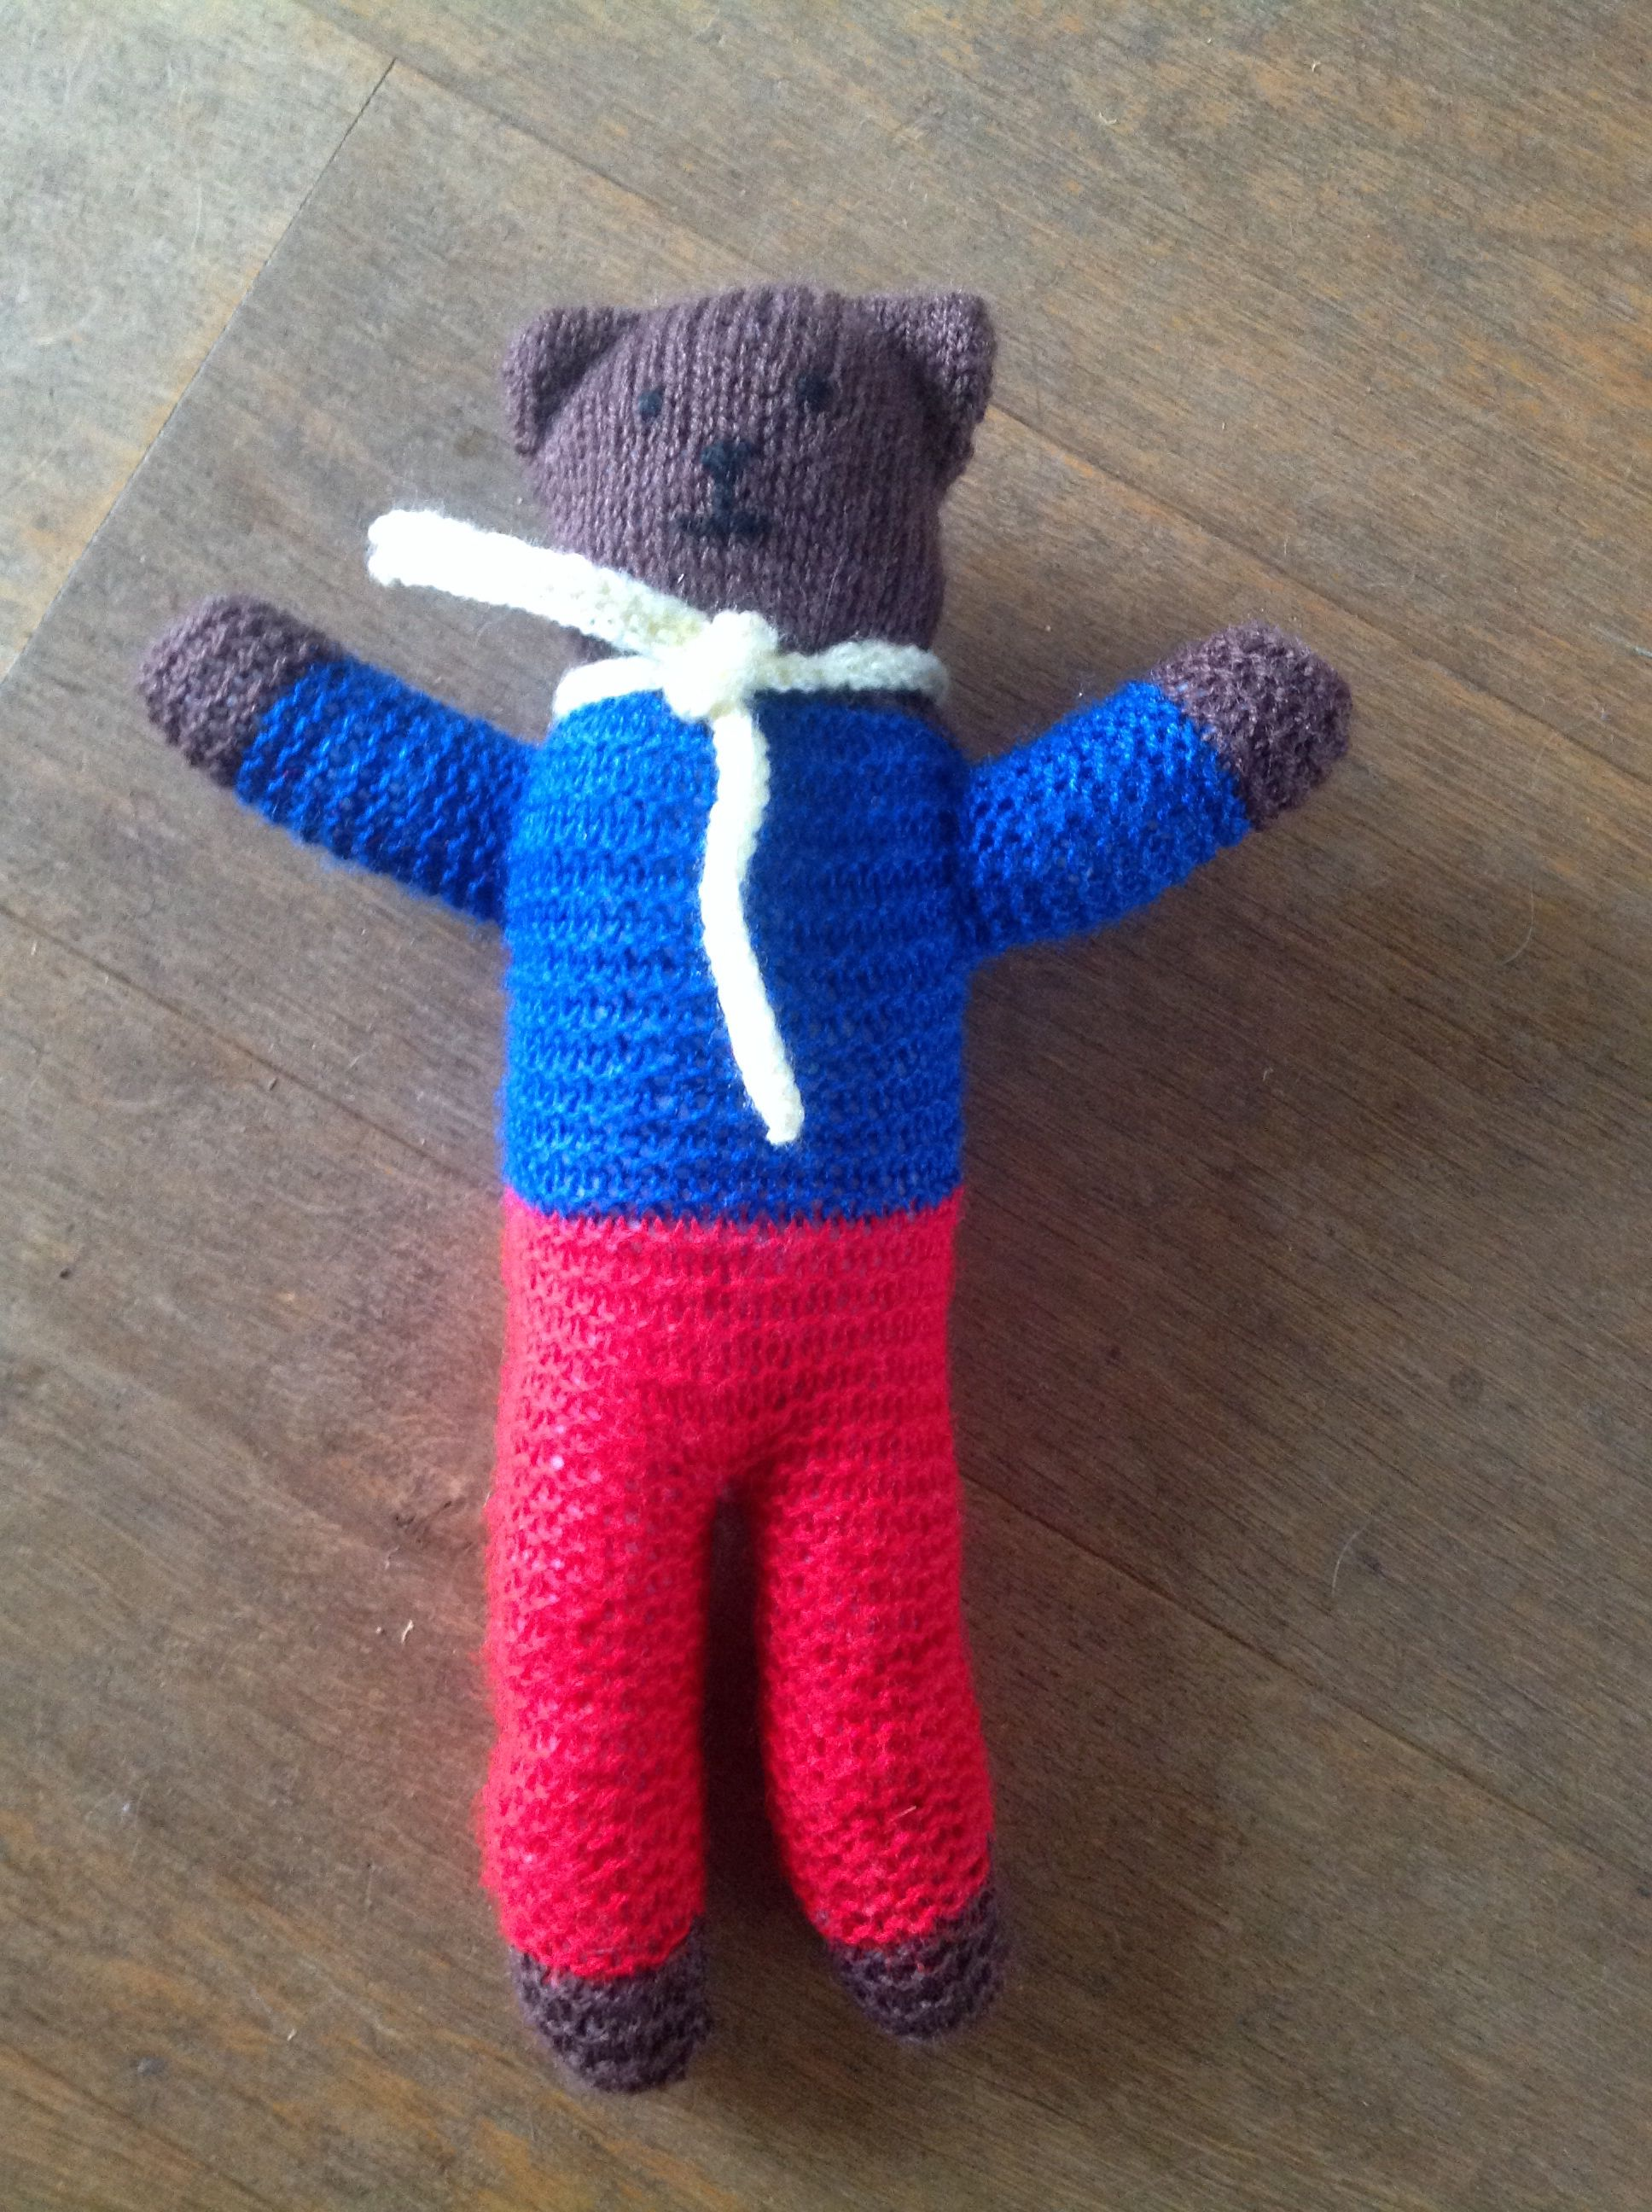 Teddy knitted using the teddies for tragedies knitting pattern for ...